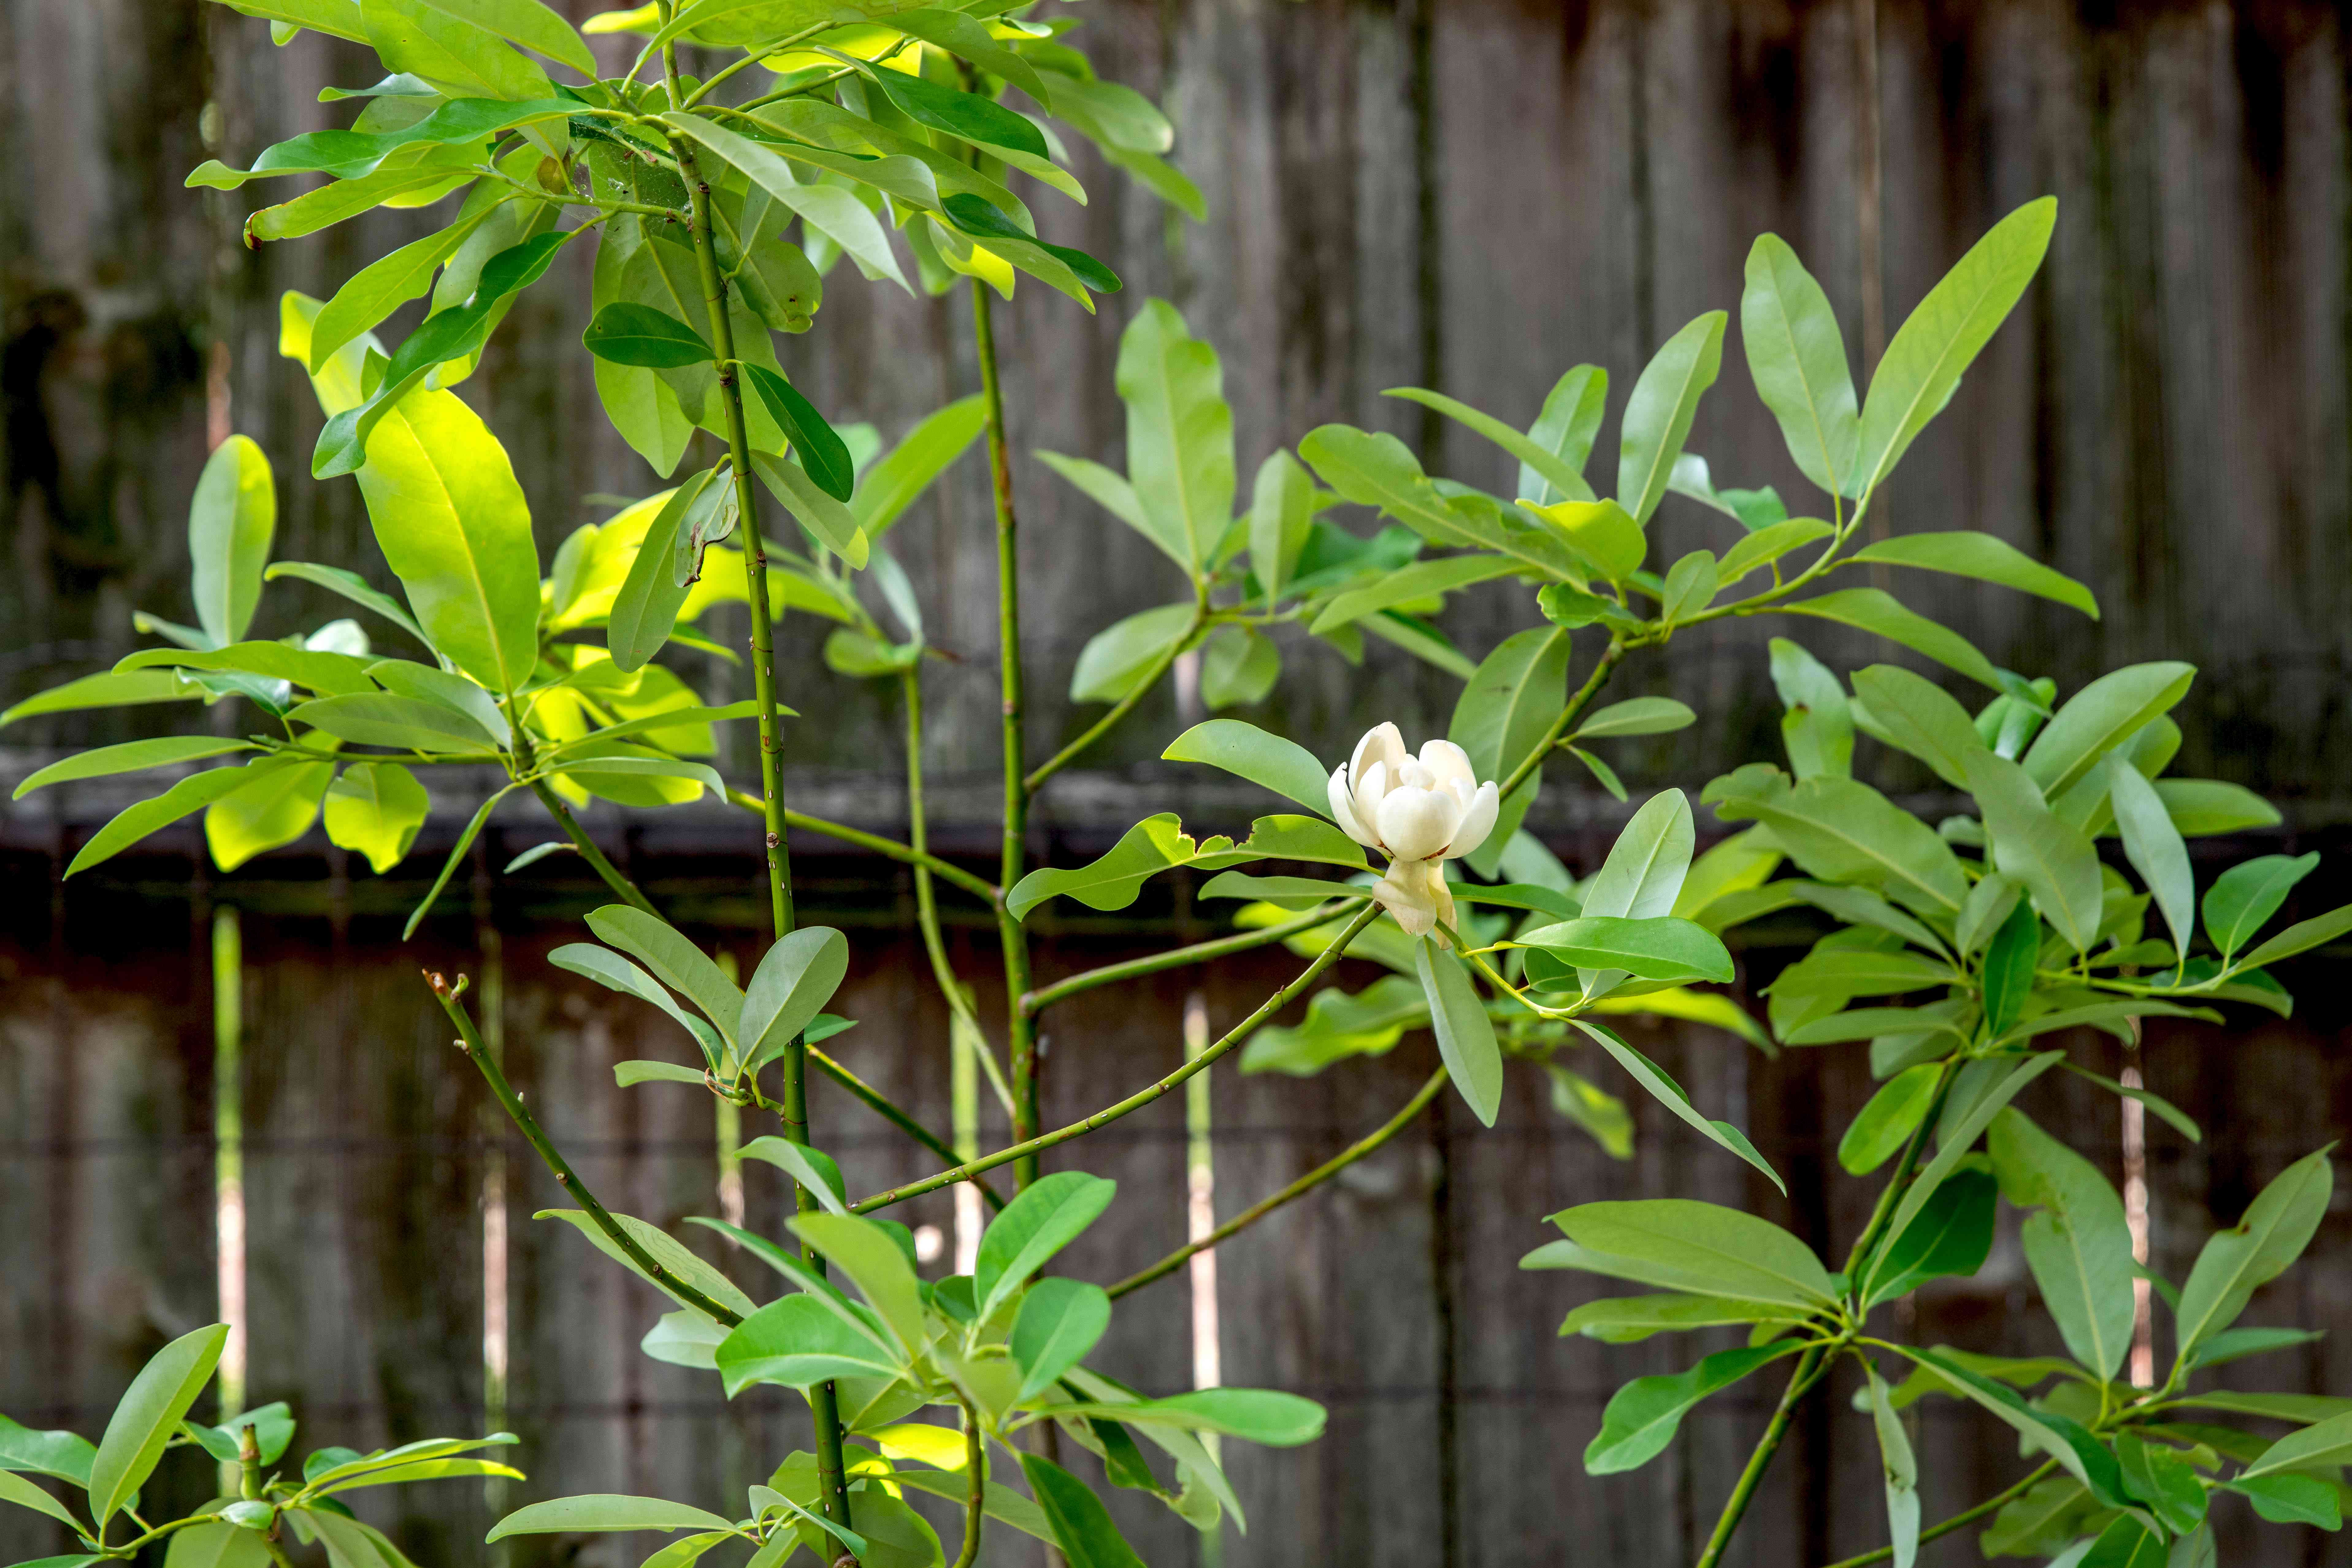 Sweetbay magnolia tree with thin branches with emerald leaves and white flower in front of wooden fence